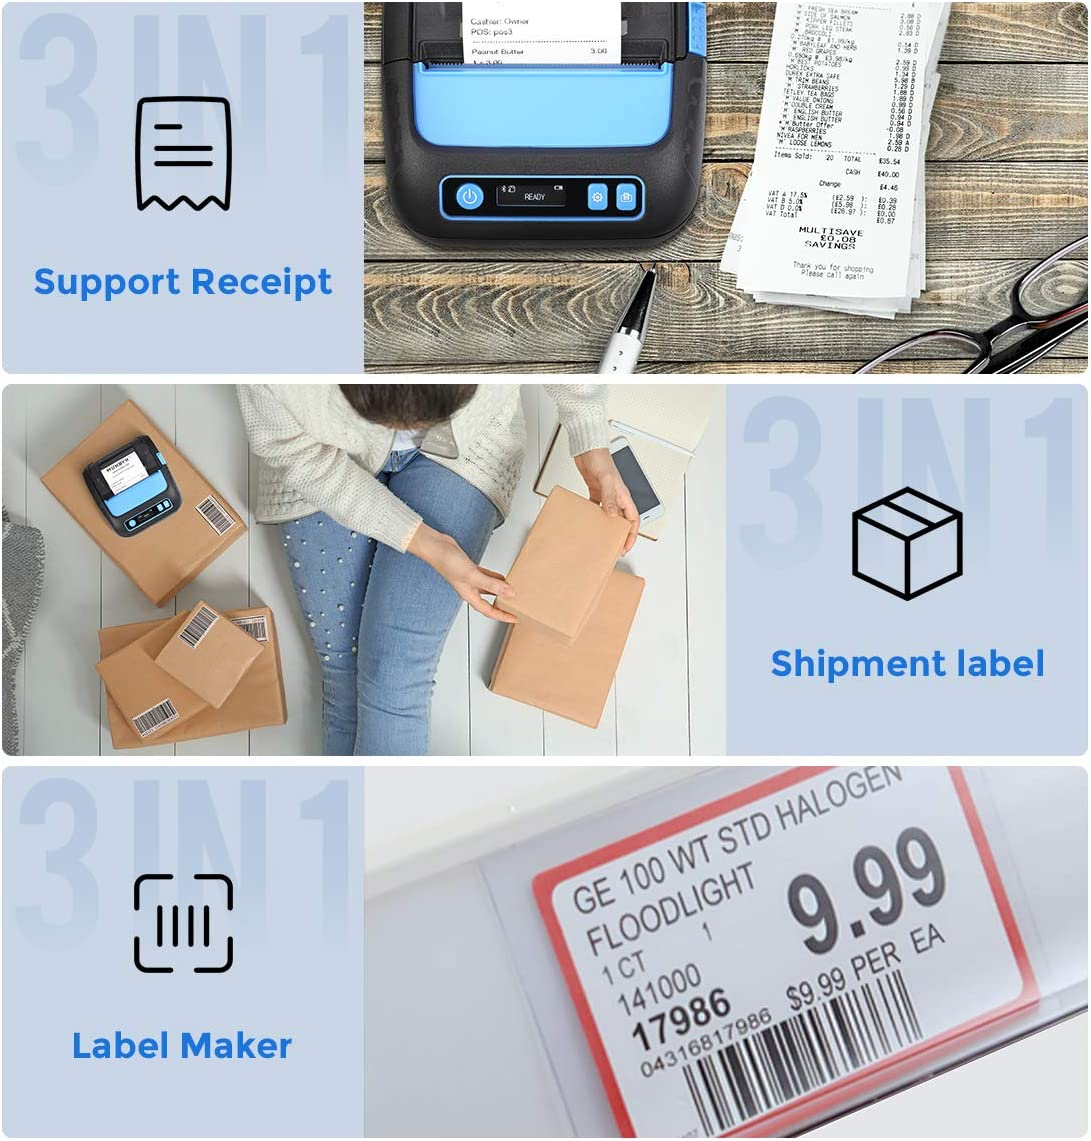 MUNBYN 3 Inches Thermal Label Printer, 80mm Receipt Label Sticker Wireless Bluetooth Shipment Printer, Mobile Printer Supported ESC/POS/TSPL/CPCL ...